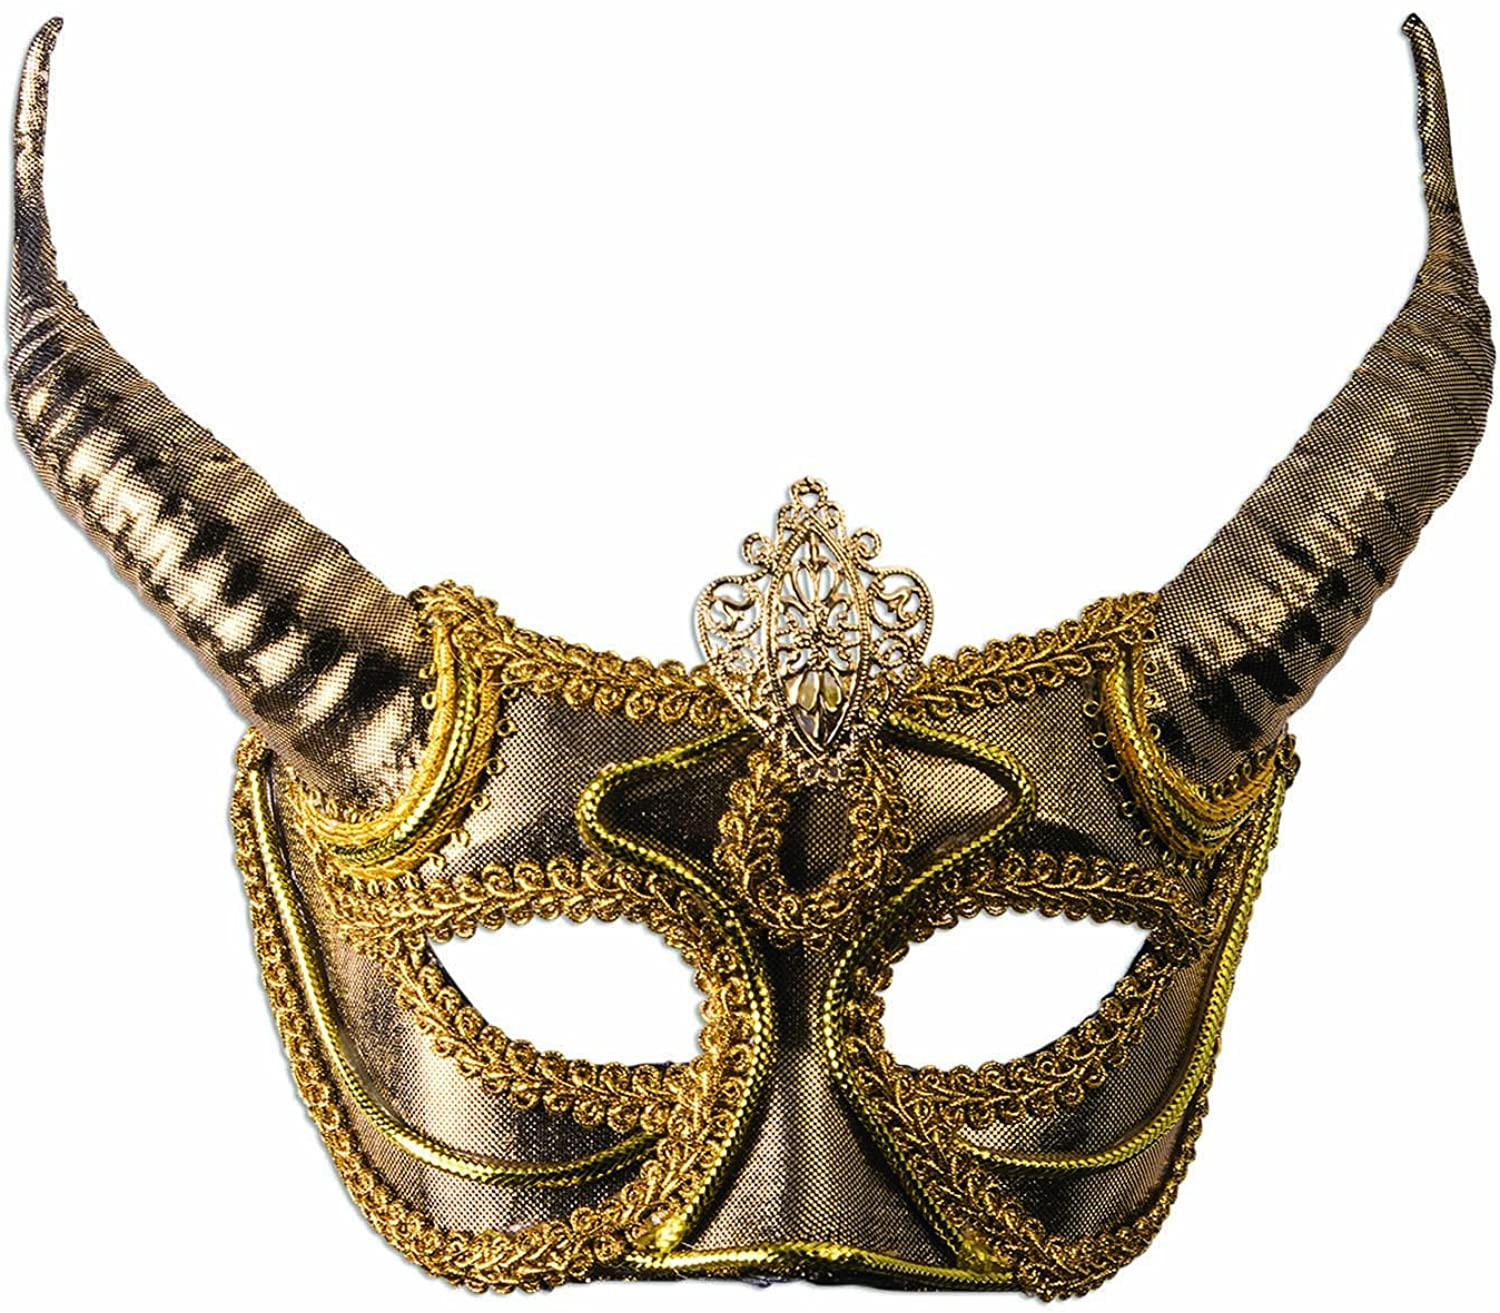 Forum Adult Faun Half Mask Horns Adult One Size